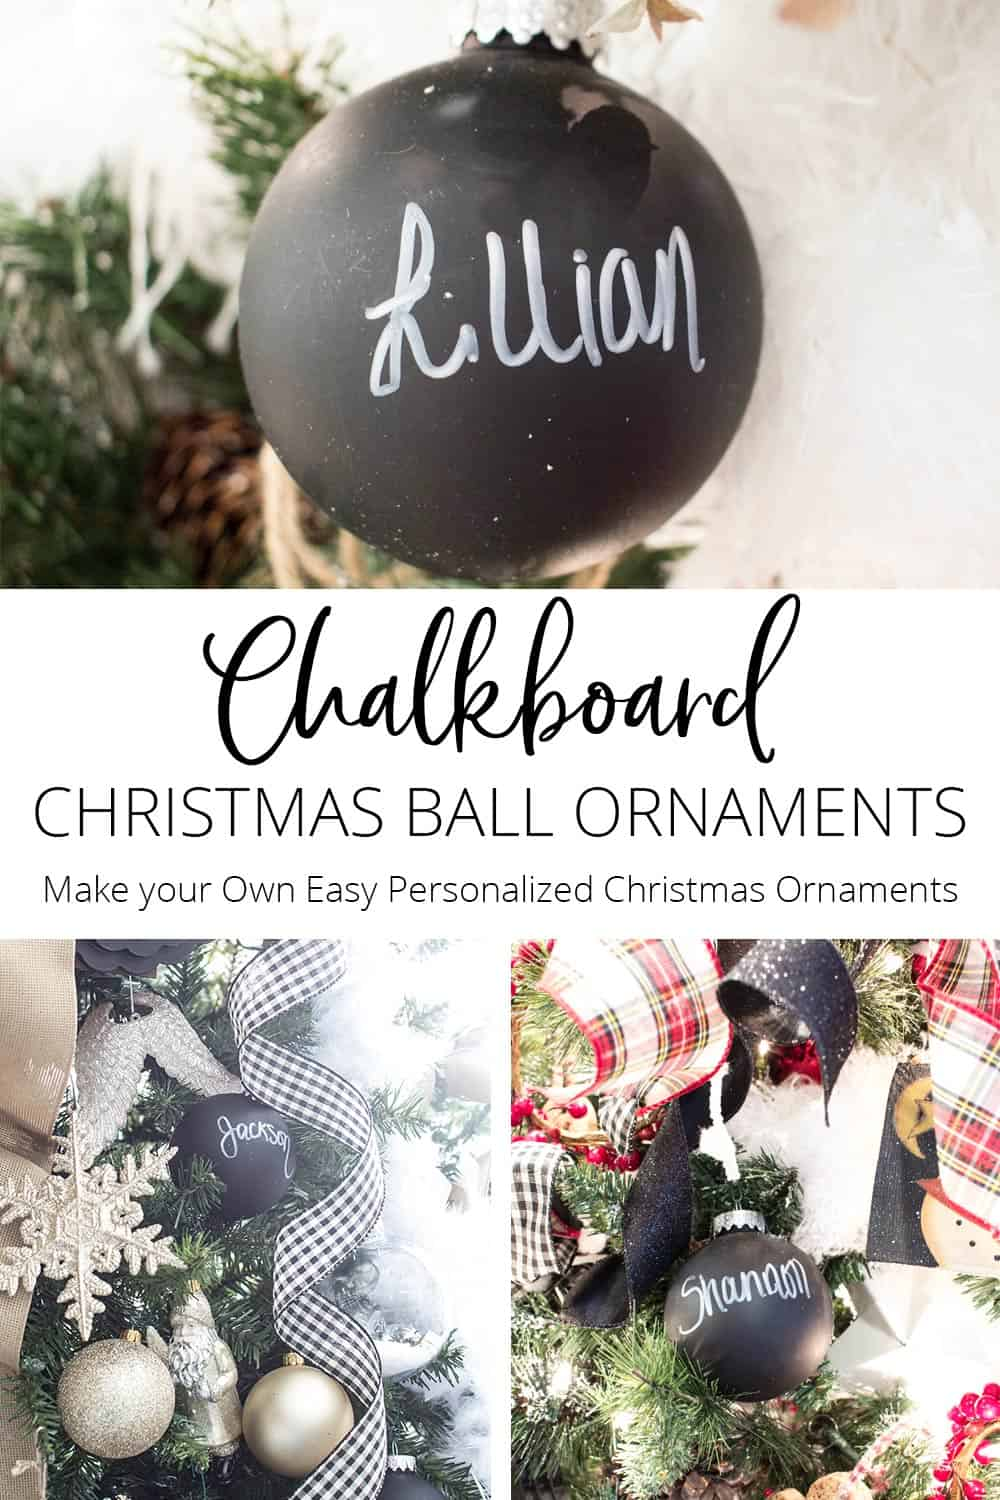 Crafting is one of those things you can do to slow down & enjoy Christmas. Crafts need not be complicated, like these Chalkboard Christmas Ball Ornaments.